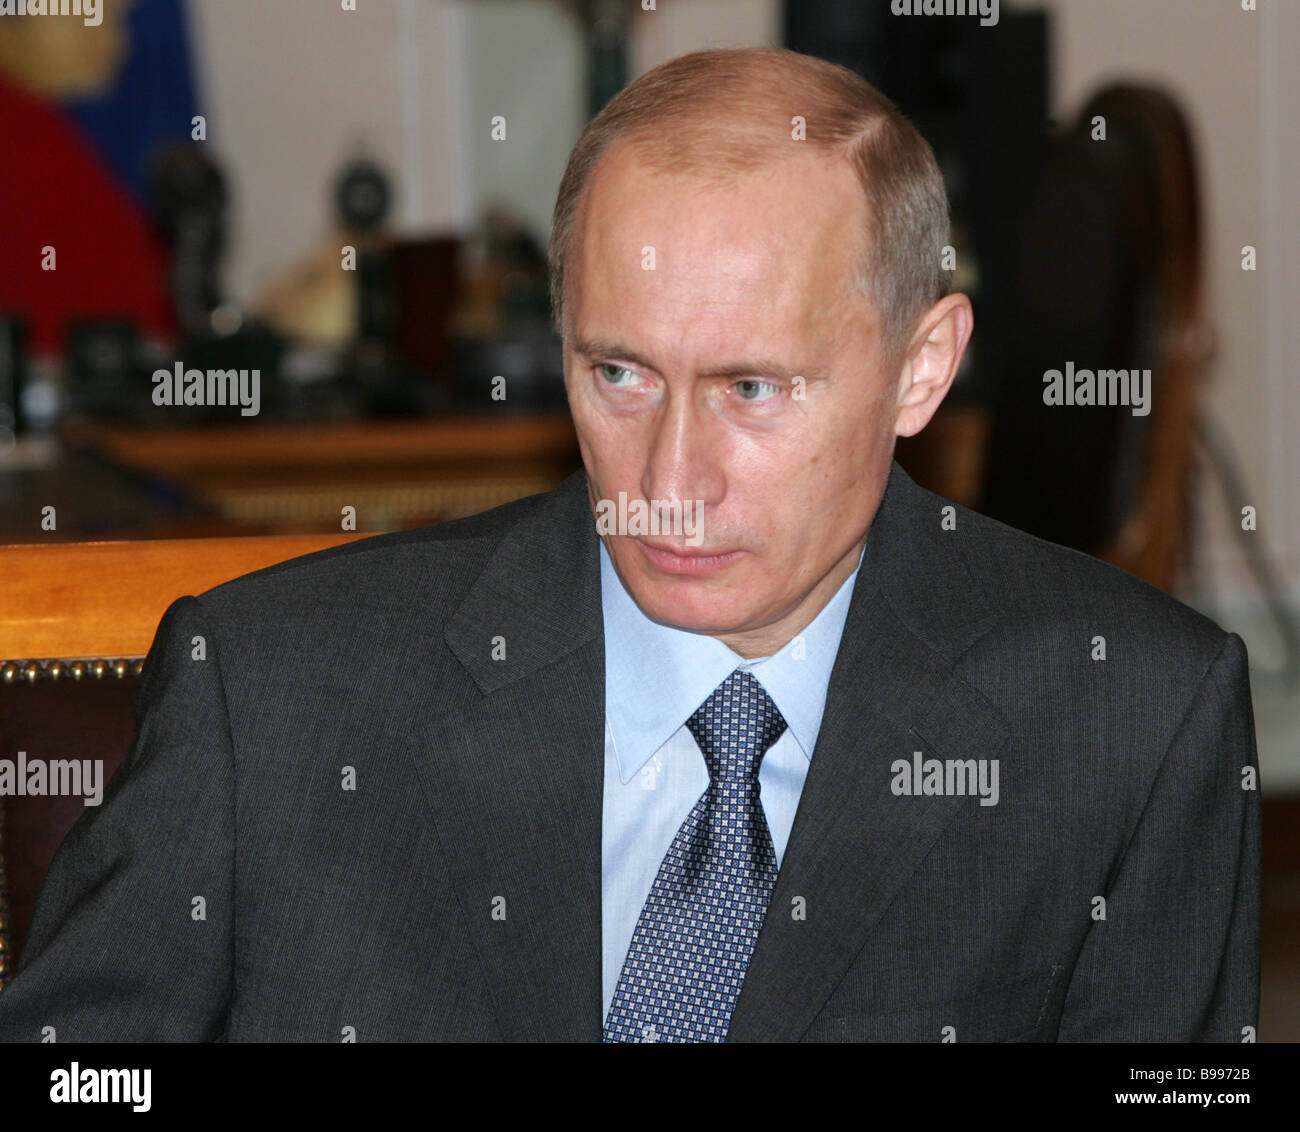 President Vladimir Putin during a meeting of the Russian Security Council at Novo Ogaryovo - Stock Image